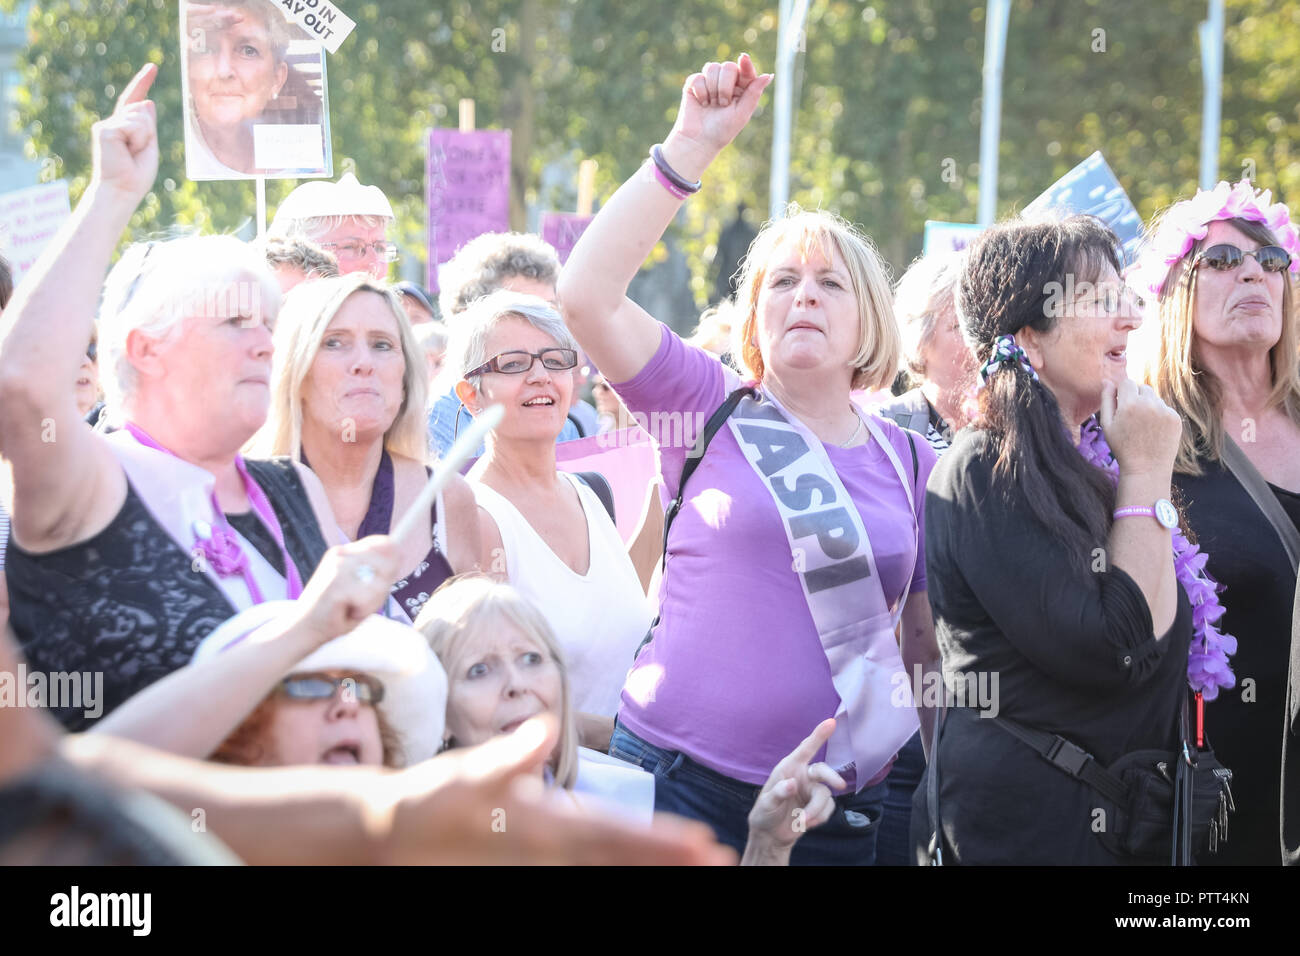 Westminster, London, 10th Oct 2018. Campaigners shout for pension equality. Women's pension groups, including the WASPI Campaign, have organised a march from Hyde Park to Parliament Square where several thousand women demonstrate for pension equality in British state pensions. Credit: Imageplotter News and Sports/Alamy Live News - Stock Image